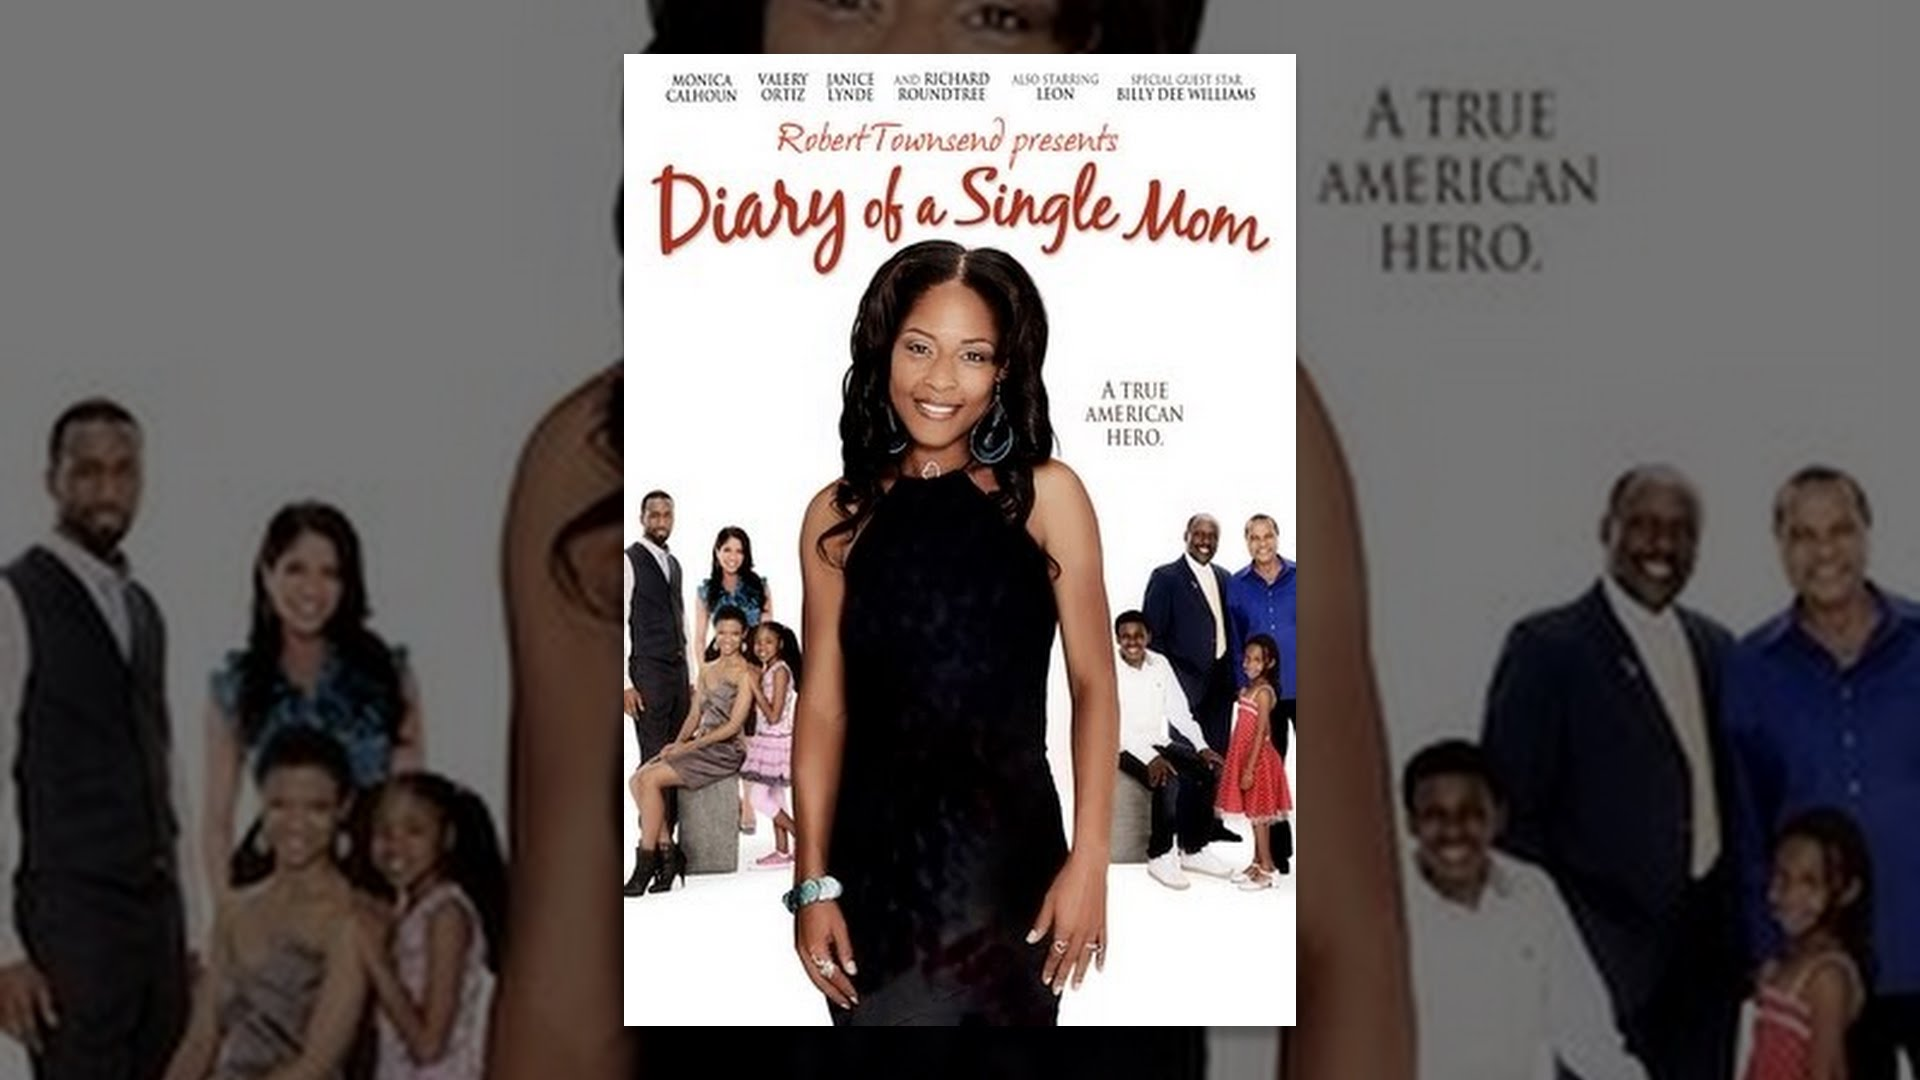 single mom dating diary Dating tips for the single mother jun 02, 2008 by genevieve nicolas richards print dating tips for the single mama tips for single moms on the dating scene.